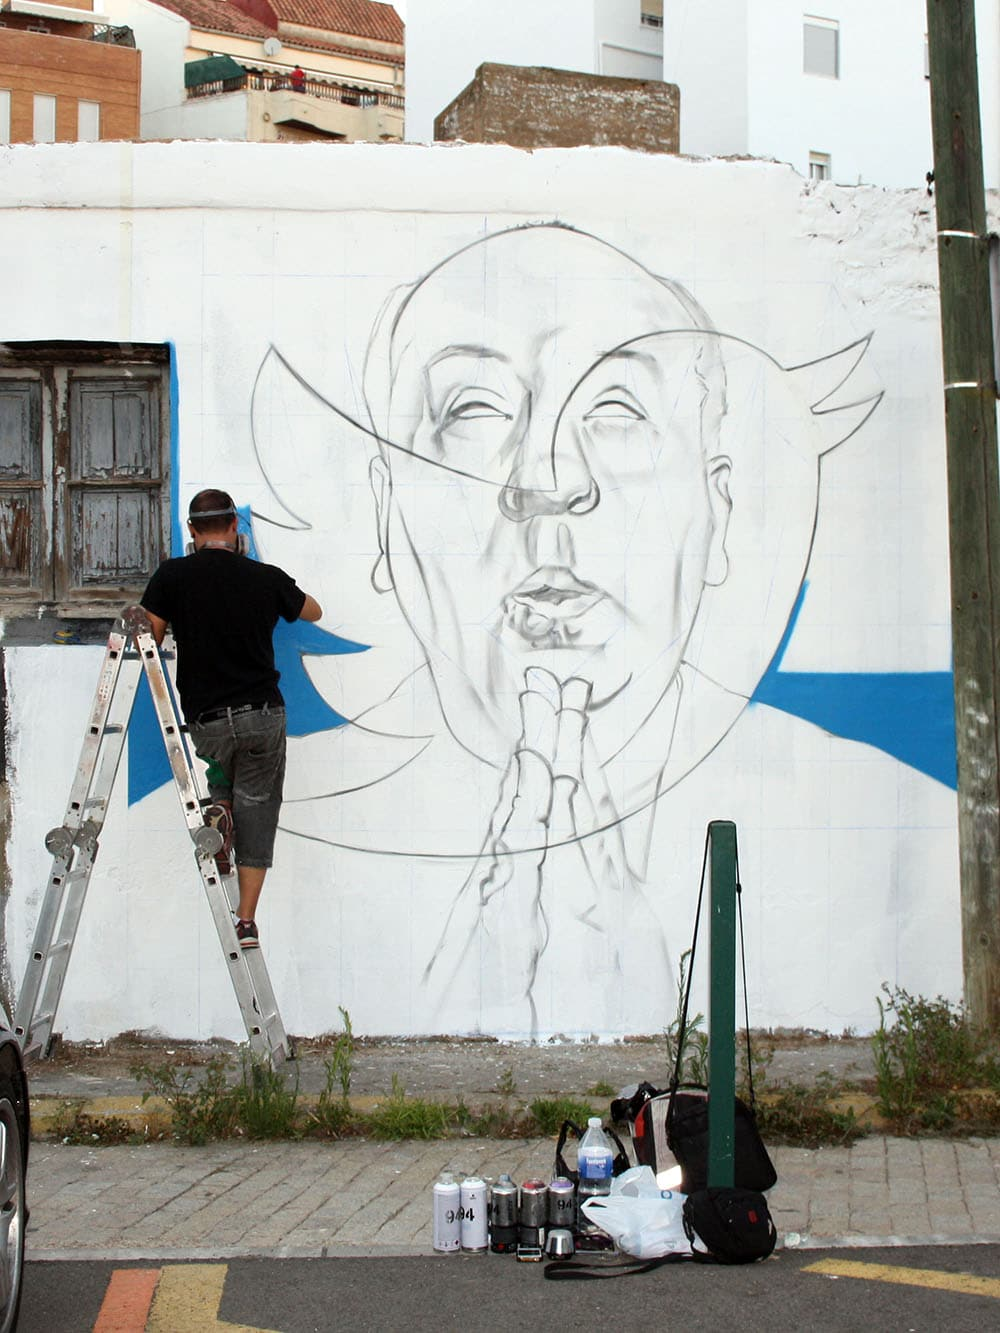 street art interview questions to MANOMATIC